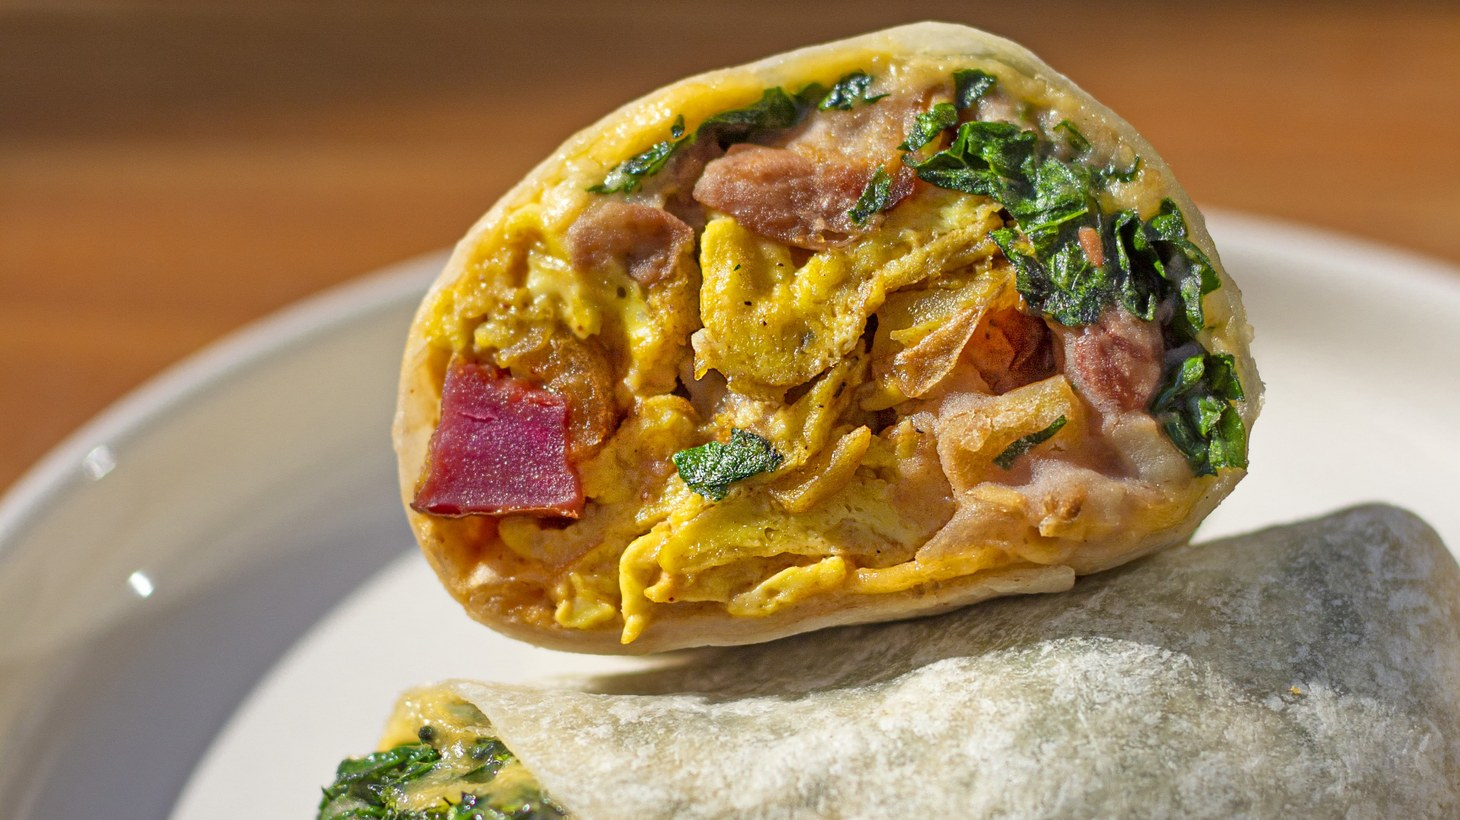 Salima Saunders uses peewee potatoes from Weiser Family Farms in her breakfast burrito at Uplifters Kitchen.